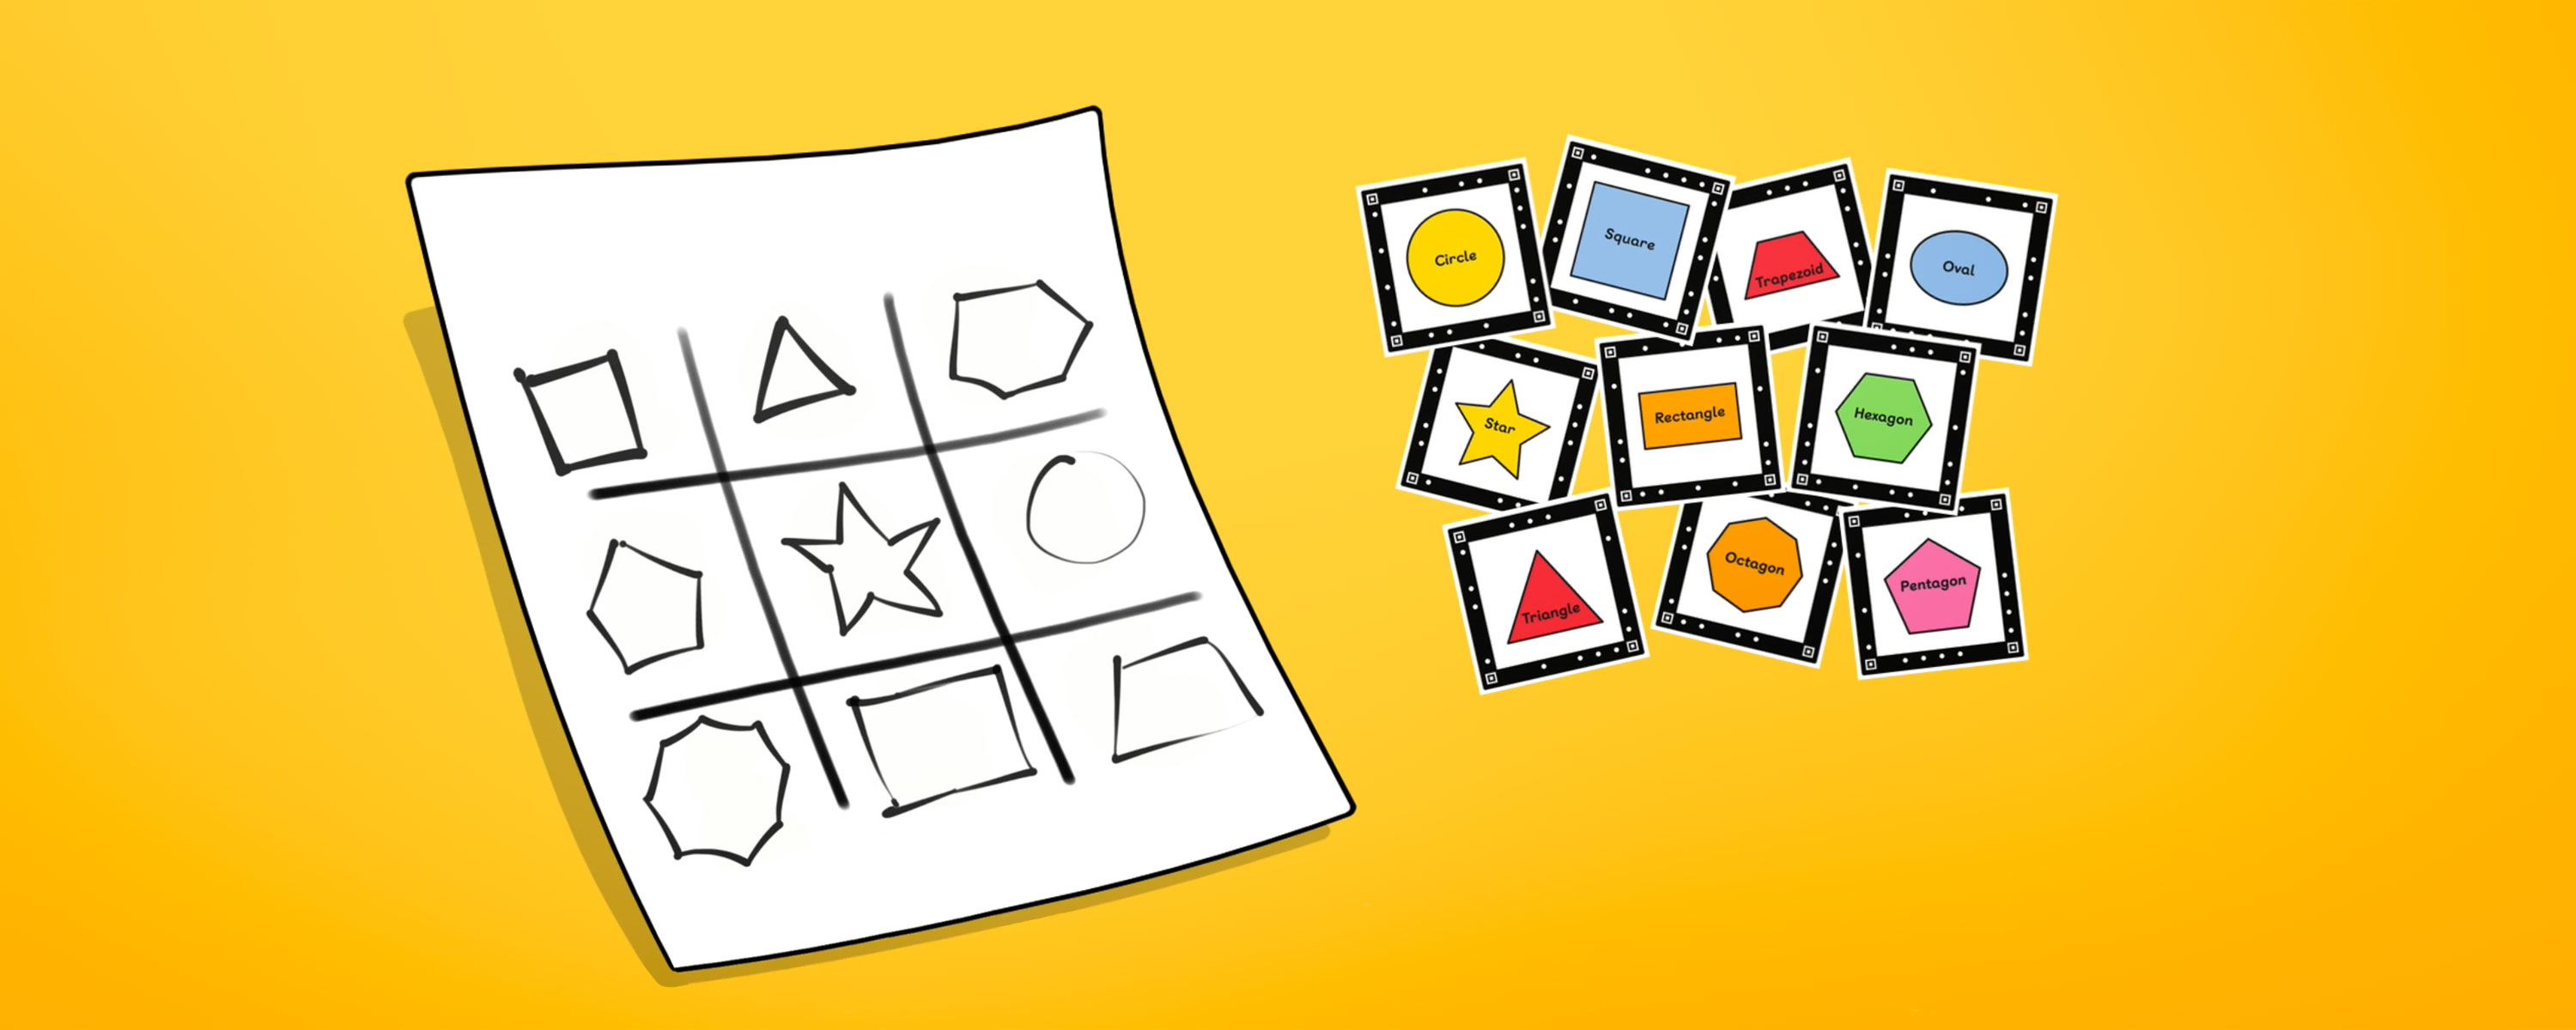 Tic Tac Toe Identifying Shapes Appykids